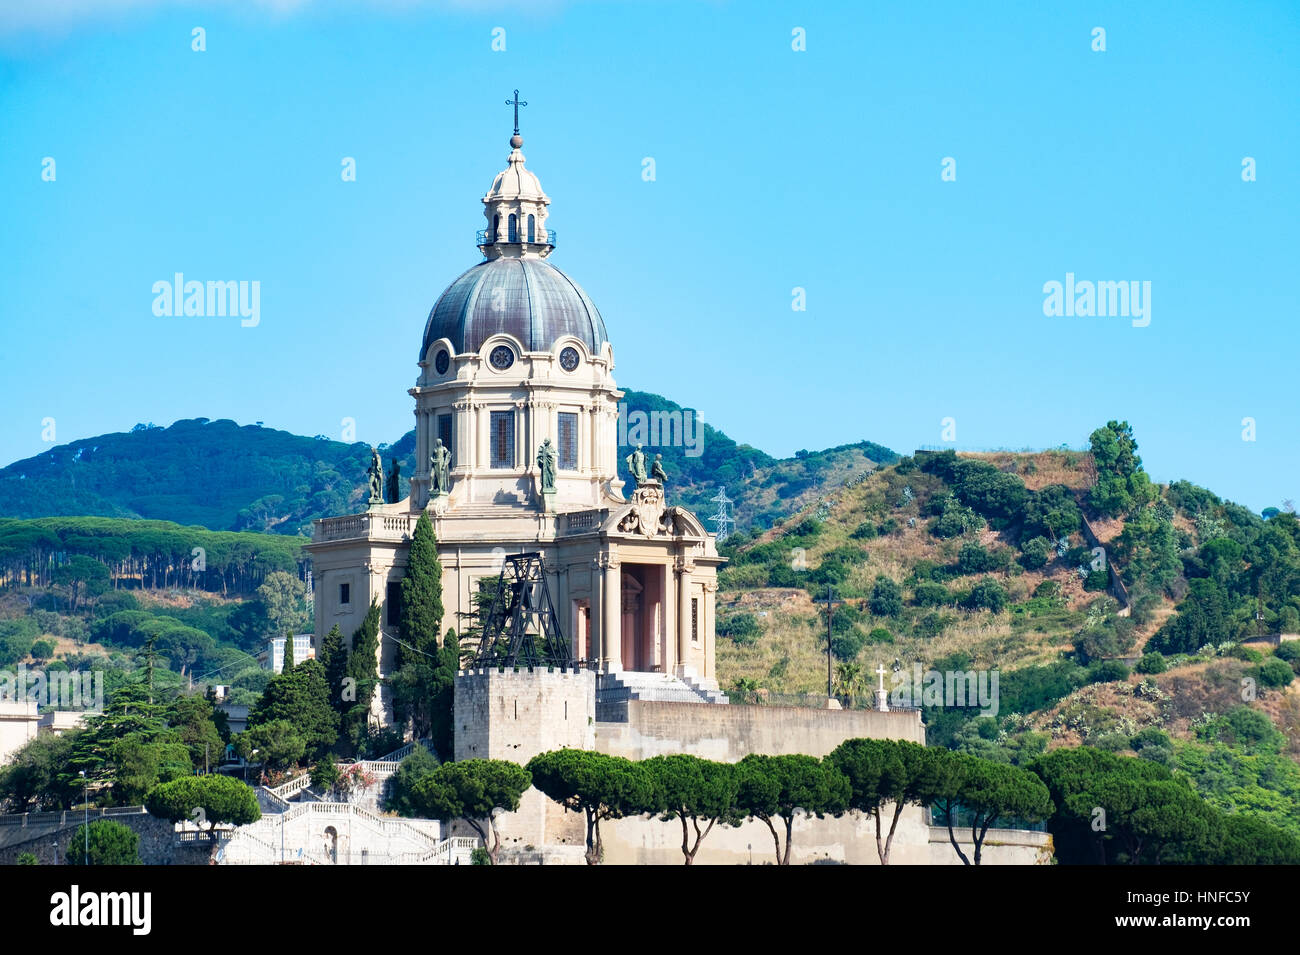 the church of Christ the King of Montalto, in Messina on the island of Sicily - Stock Image